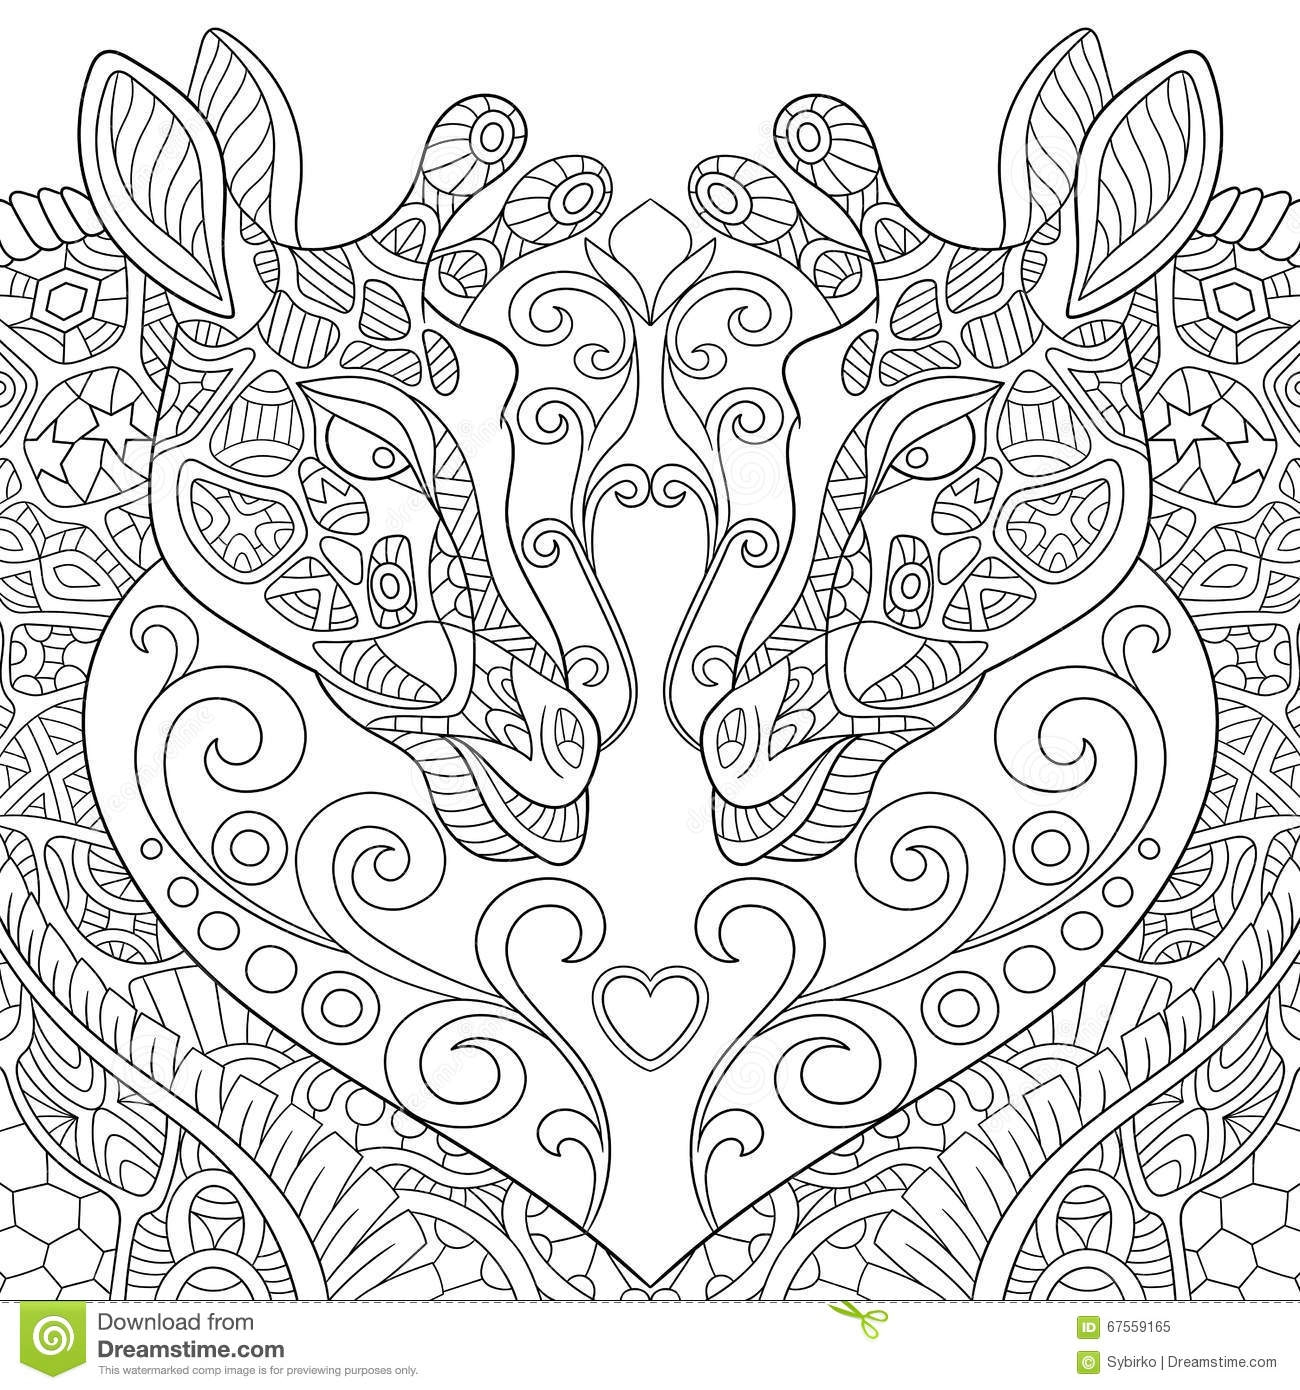 fall tree coloring pages - stock illustration zentangle stylized two lovely giraffes heart cartoon sketch adult antistress coloring page hand drawn doodle image